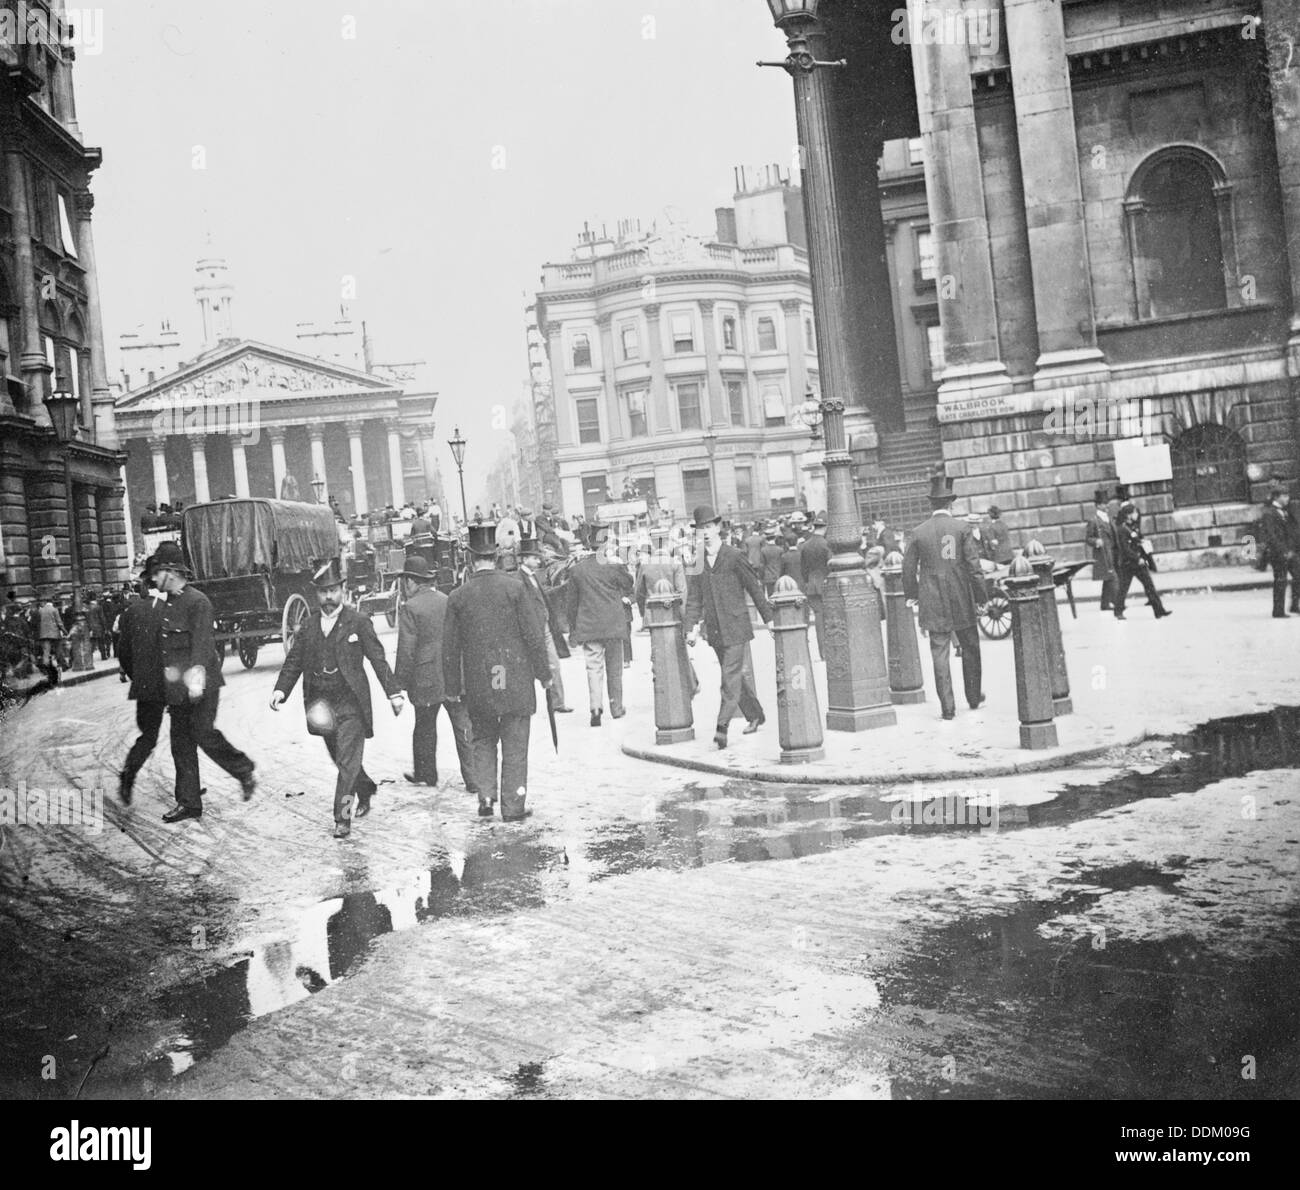 Businessmen by the Bank of England and the Royal Exchange, City of London, (1920s?). Artist: John H Stone Stock Photo